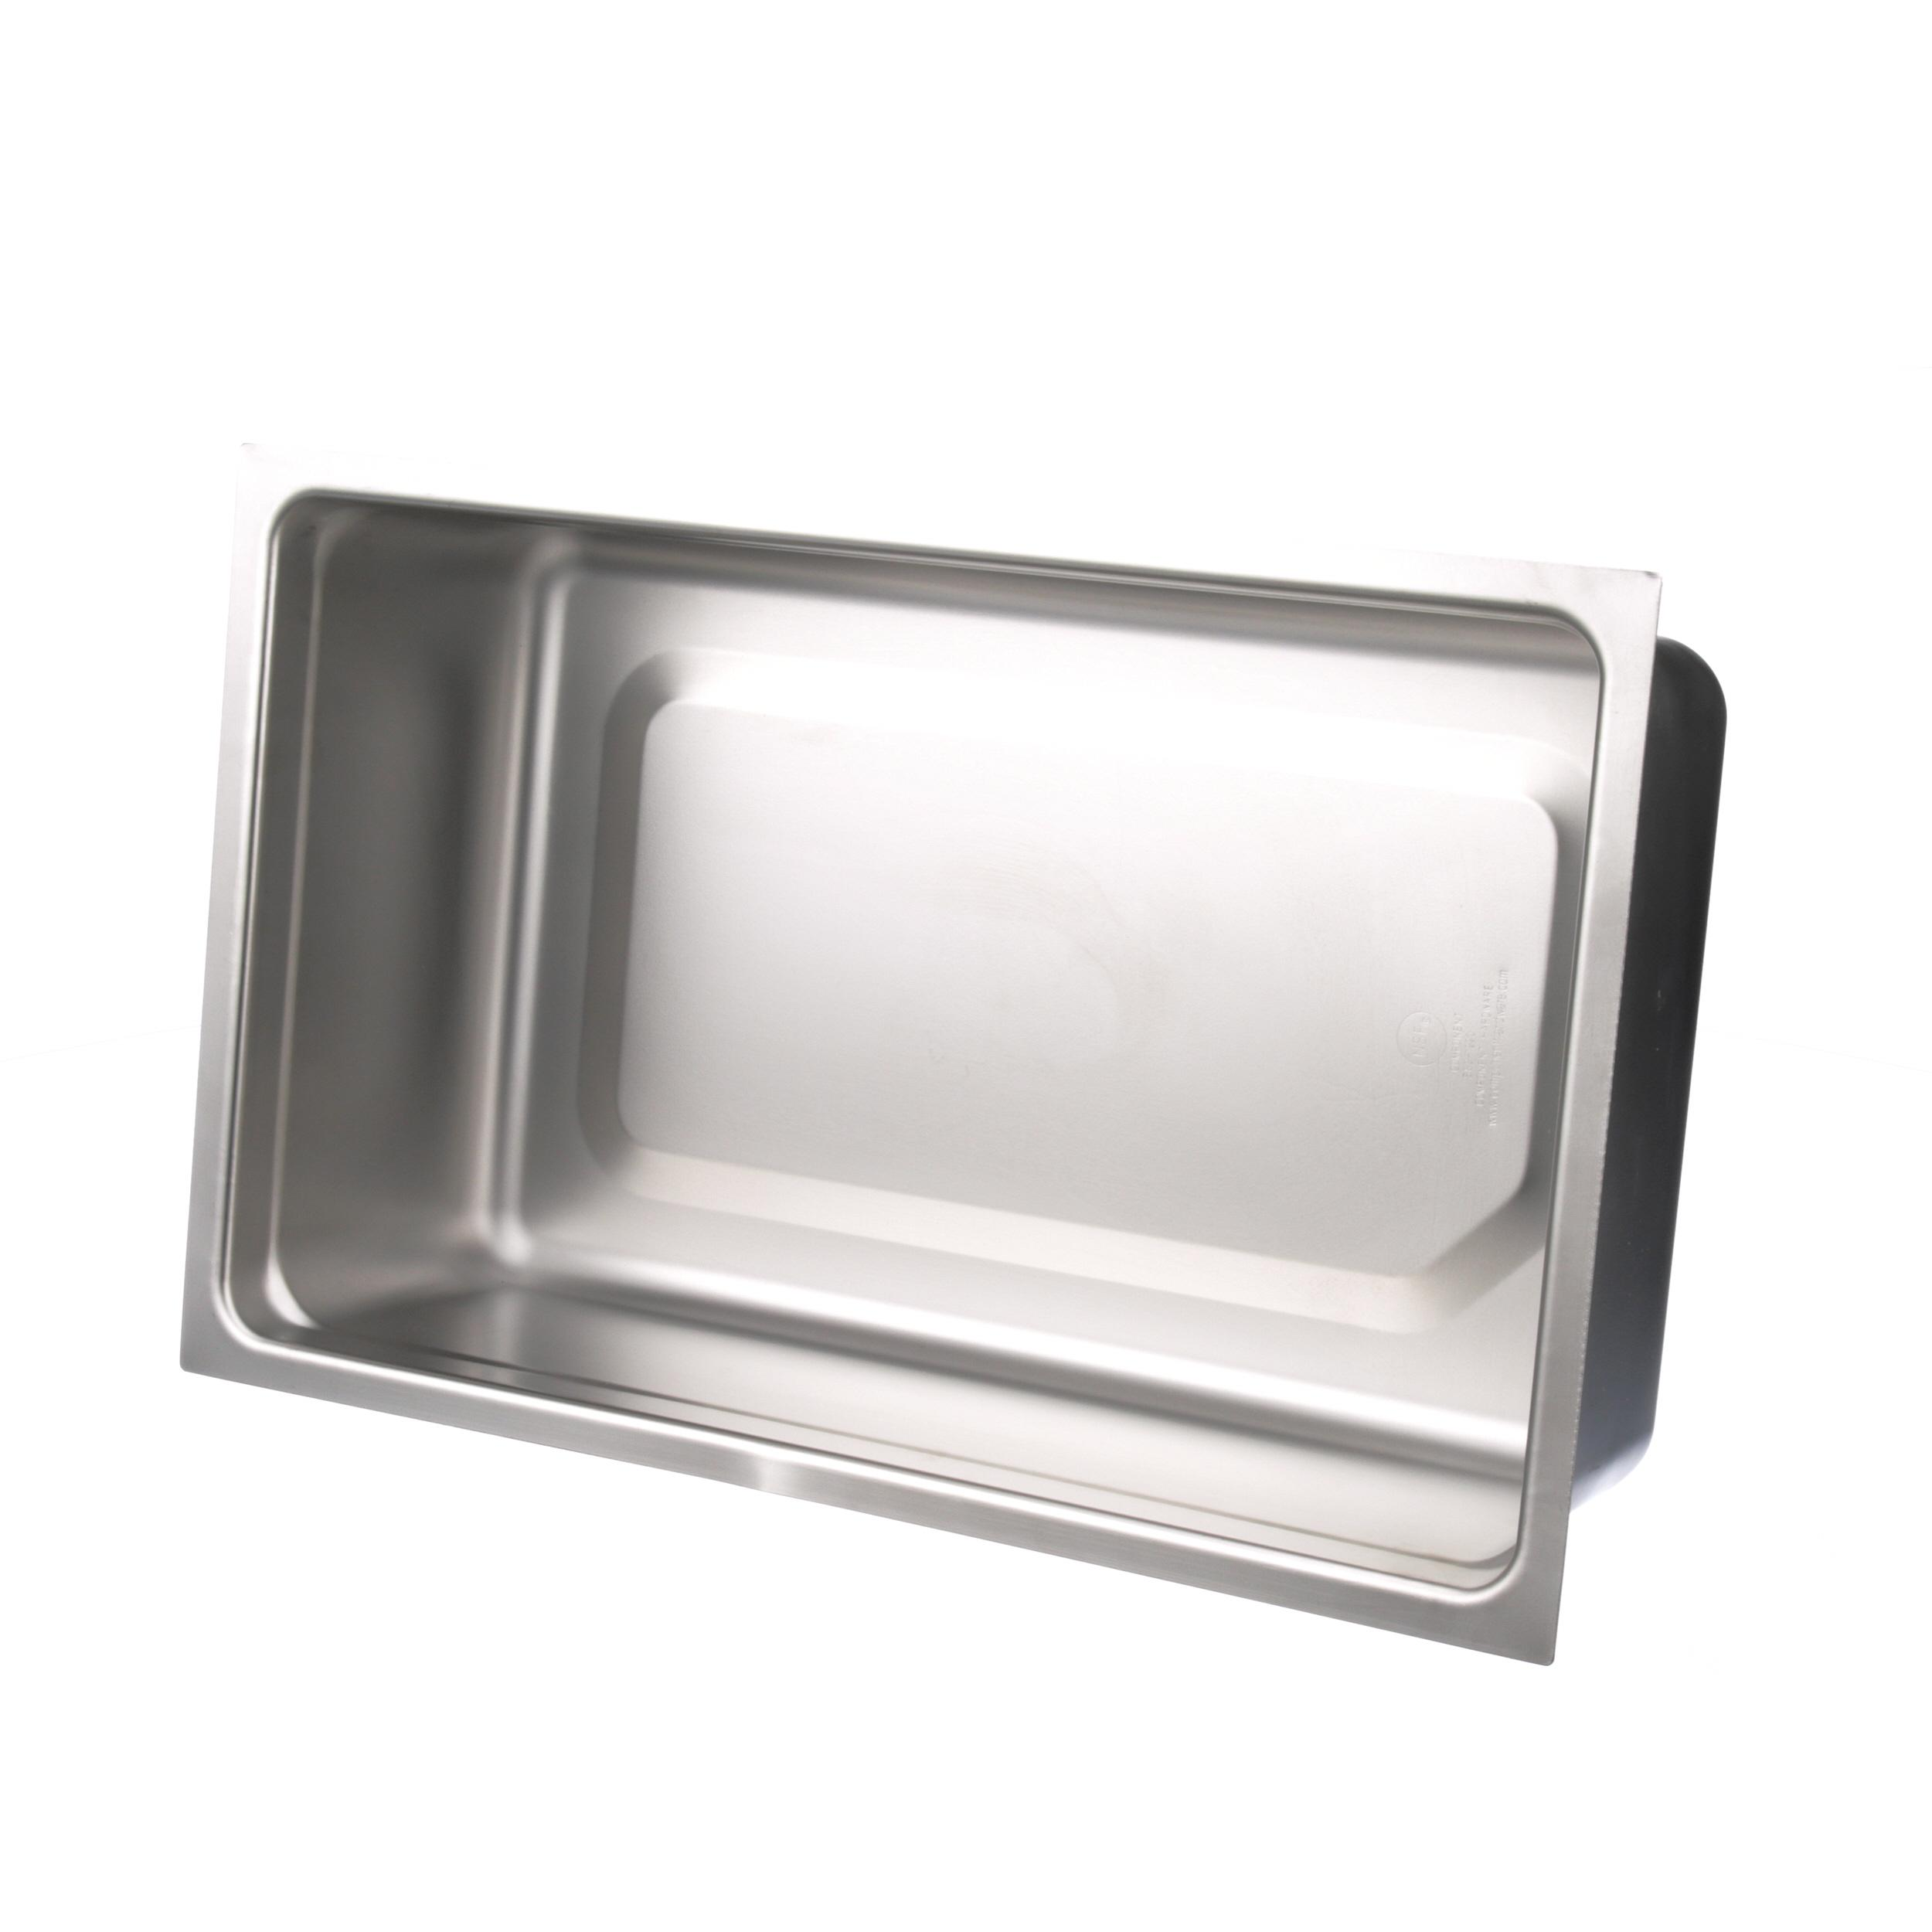 RANDELL PAN, SS TANK 12X20 FOR 9560 W/NO DRAIN